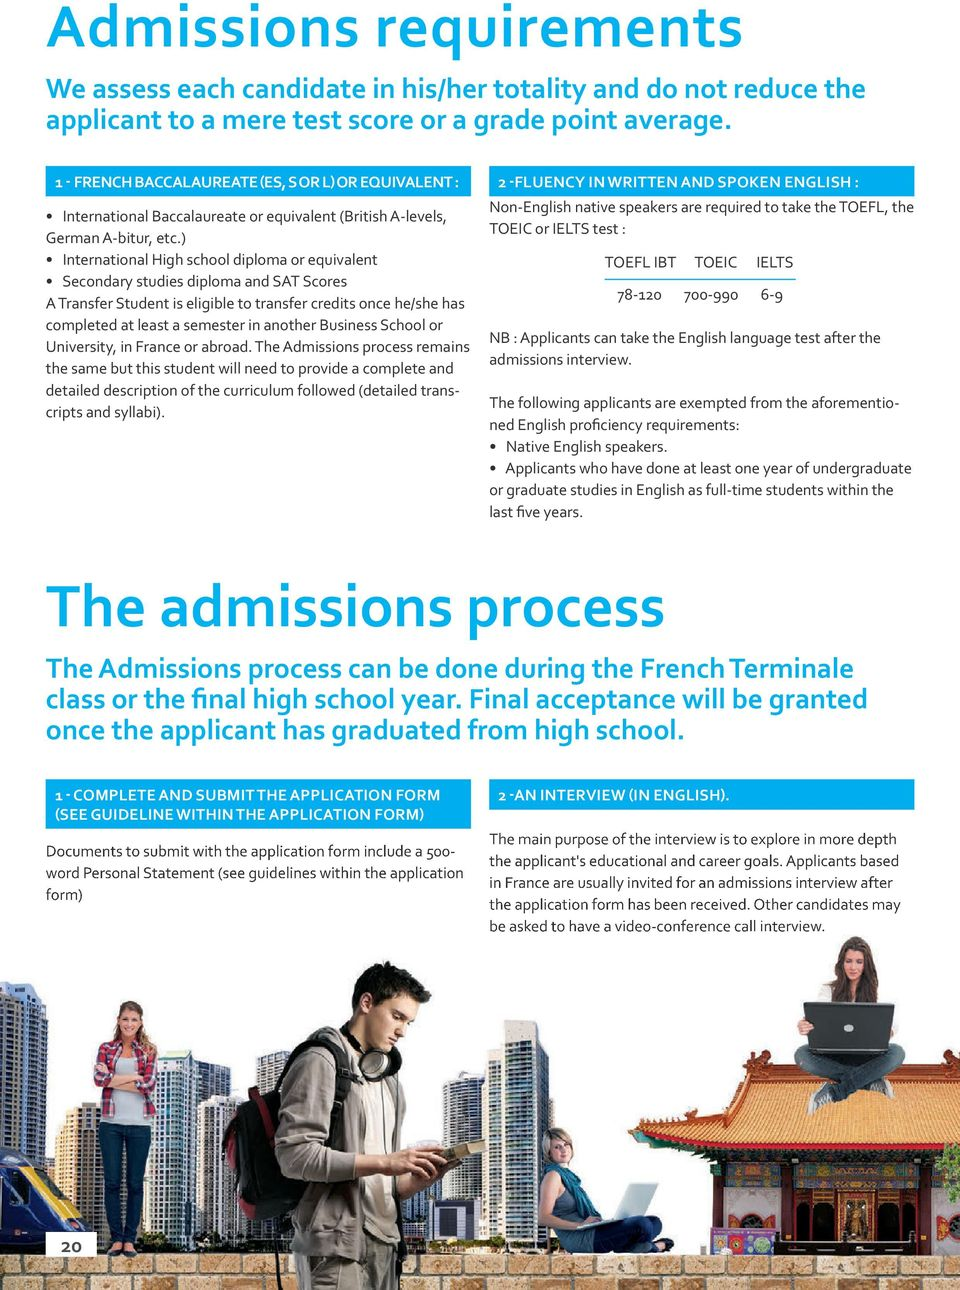 ) International High school diploma or equivalent Secondary studies diploma and SAT Scores A Transfer Student is eligible to transfer credits once he/she has completed at least a semester in another